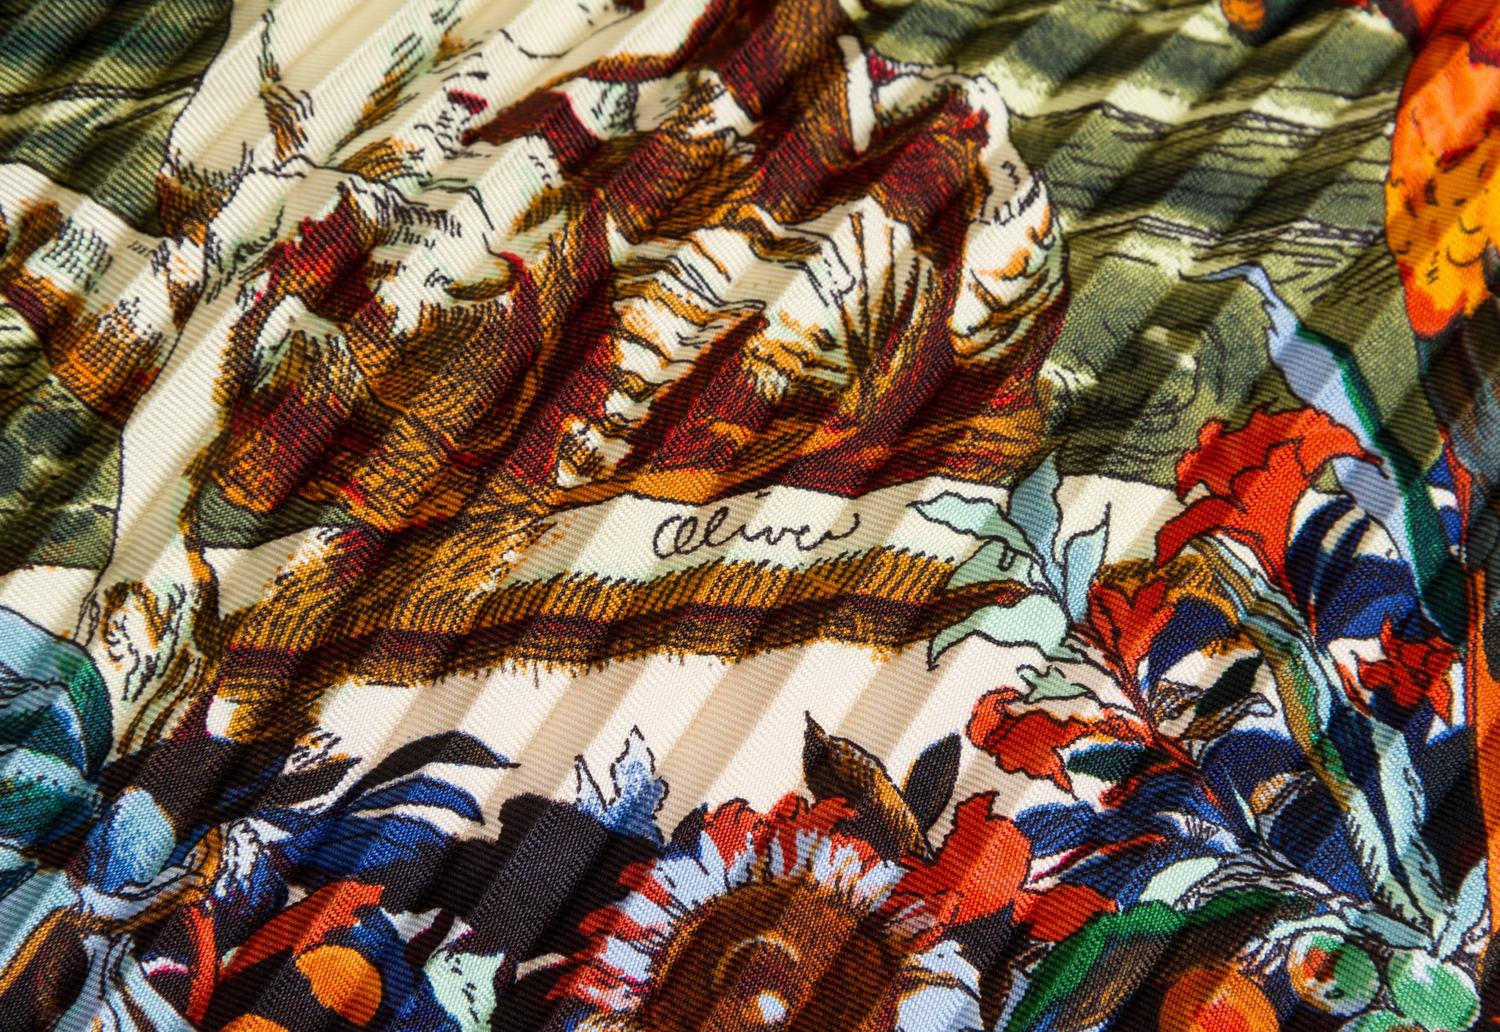 herm 232 s colombus scarf by kermit oliver for sale at 1stdibs